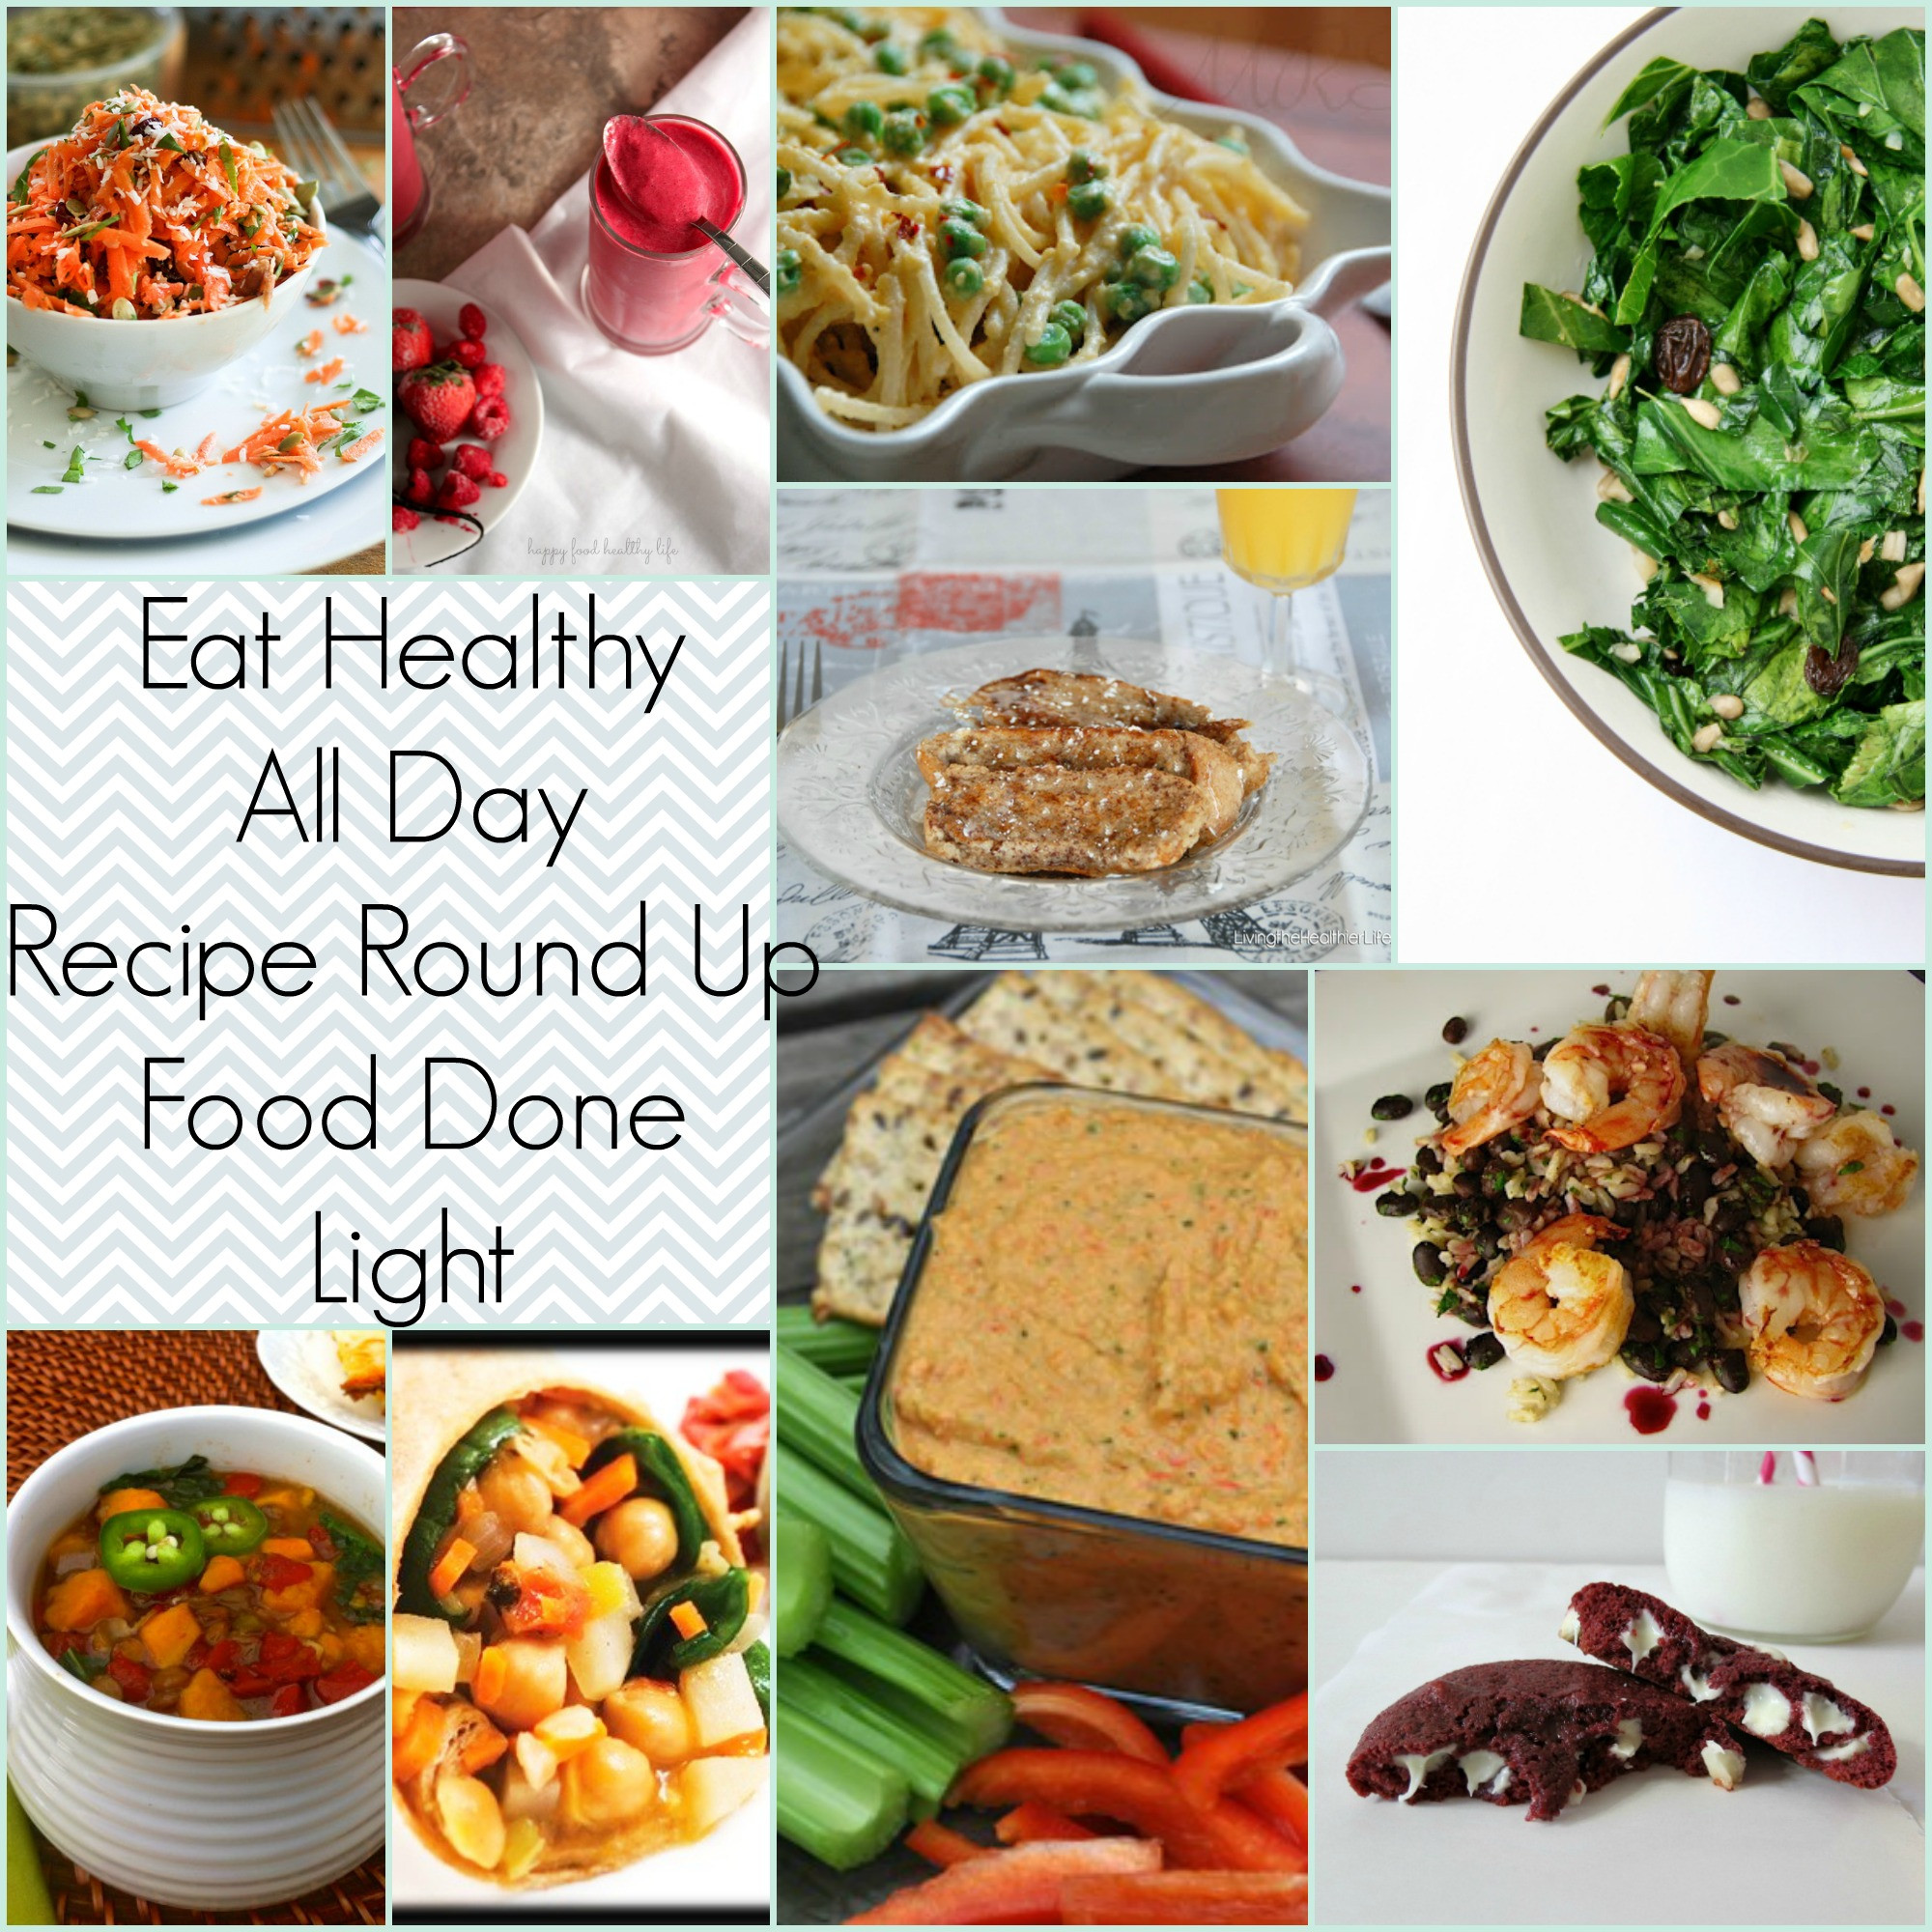 Healthy Breakfast Lunch And Dinner  Eat Healthy All Day Recipe Round Up